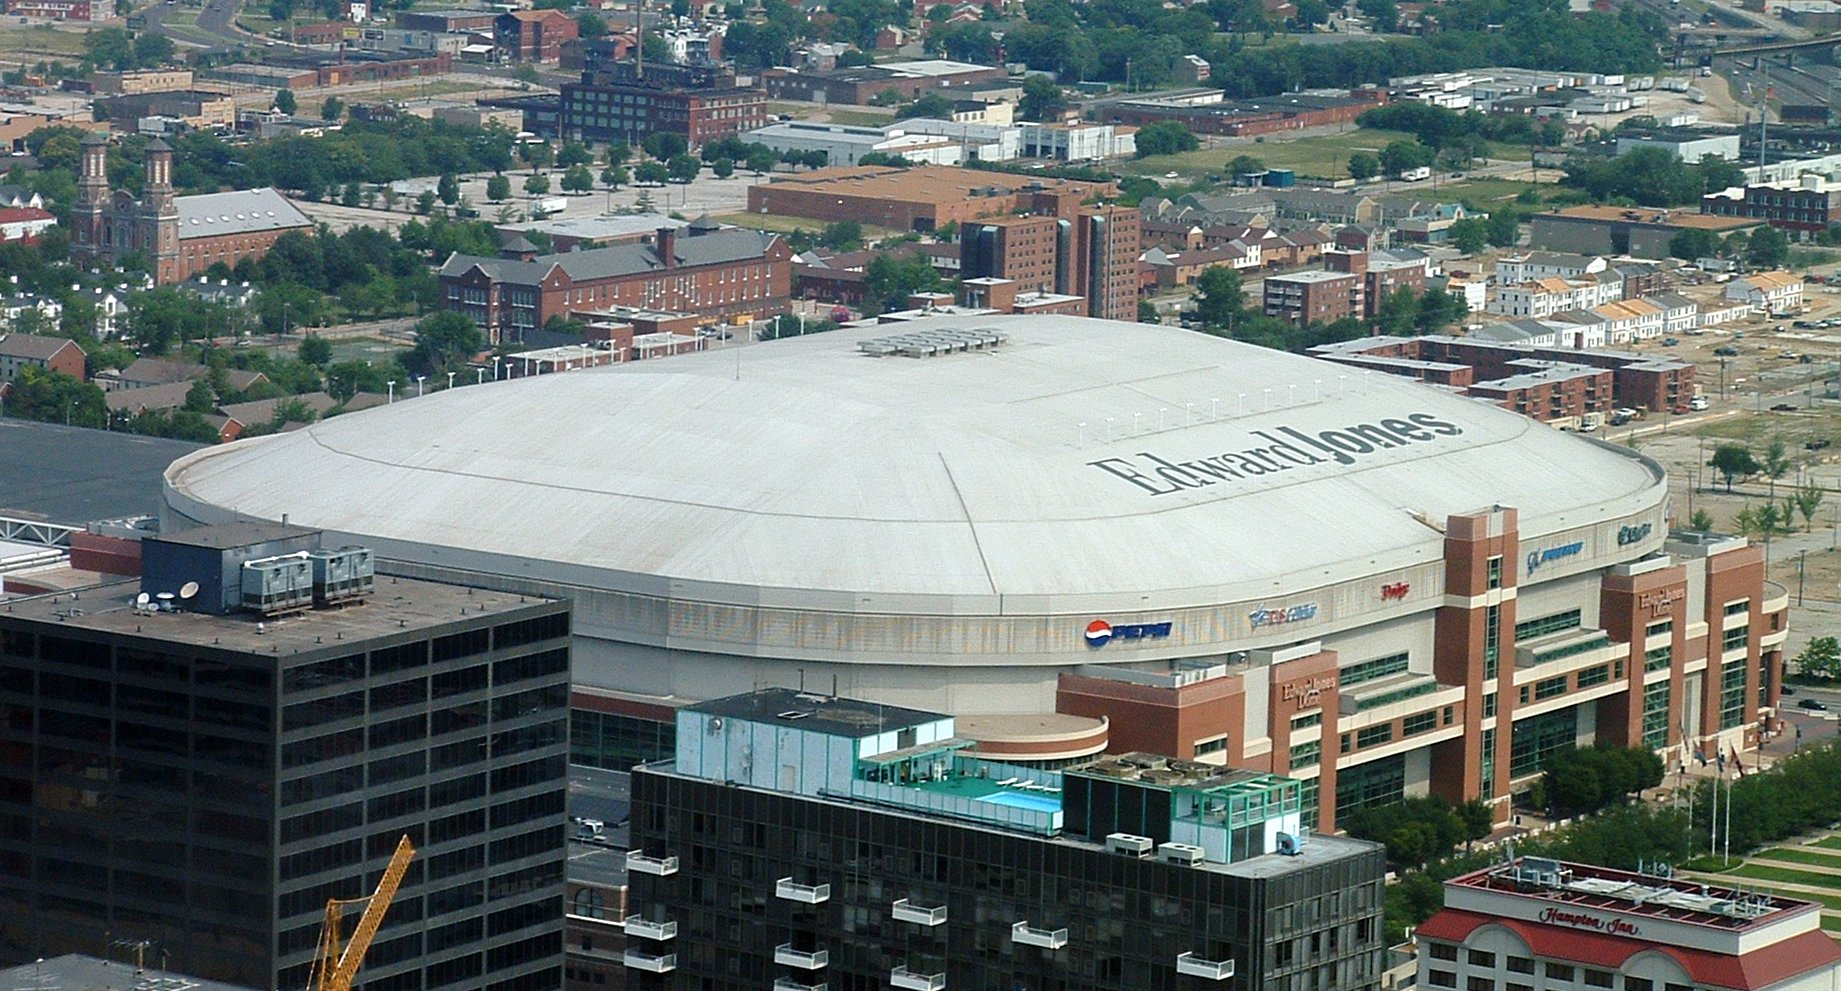 The Dome 90